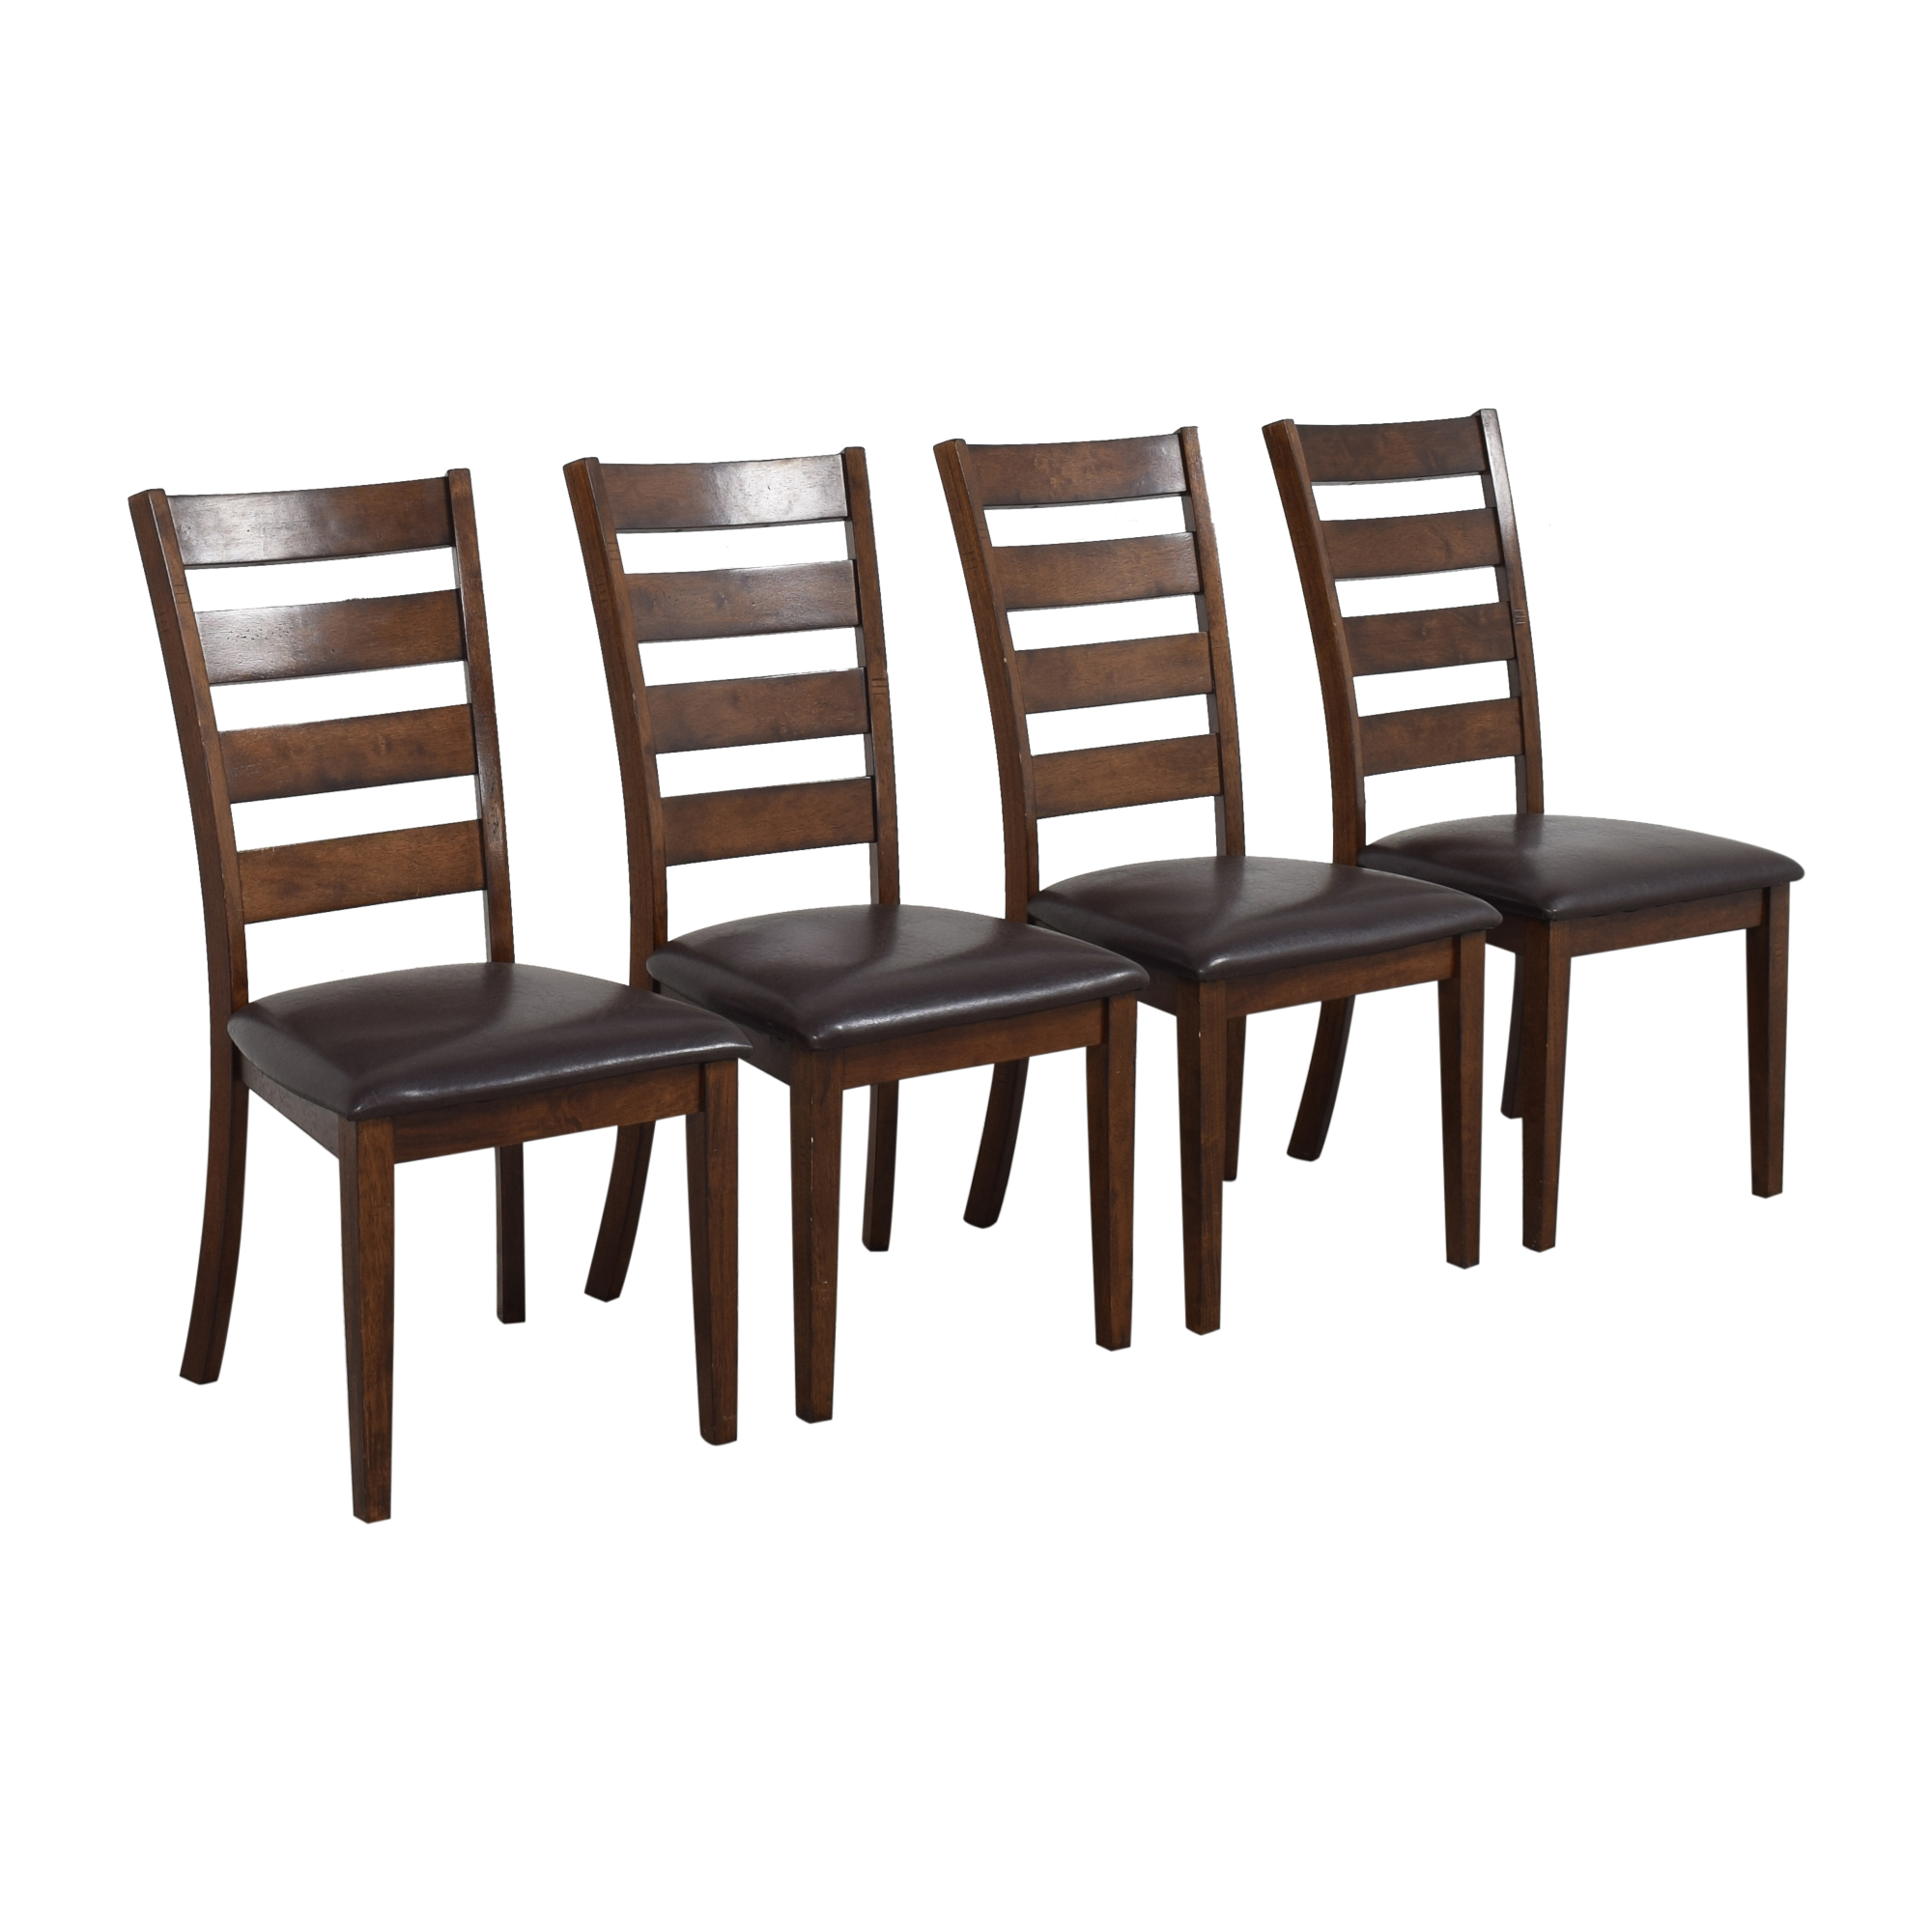 buy Raymour & Flanigan Ladder Back Dining Chairs Raymour & Flanigan Dining Chairs